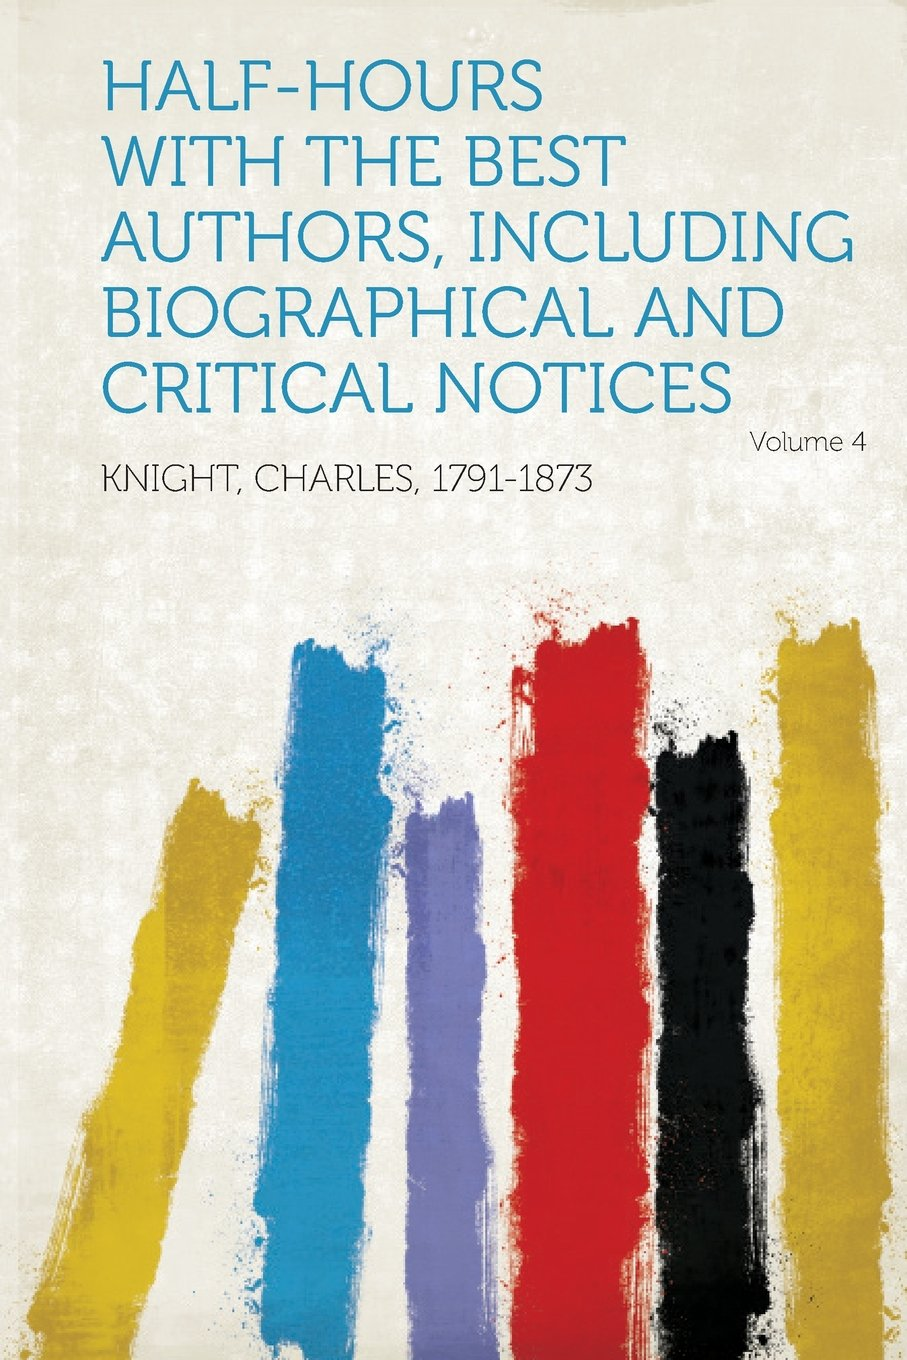 Half-Hours with the Best Authors, Including Biographical and Critical Notices Volume 4 pdf epub